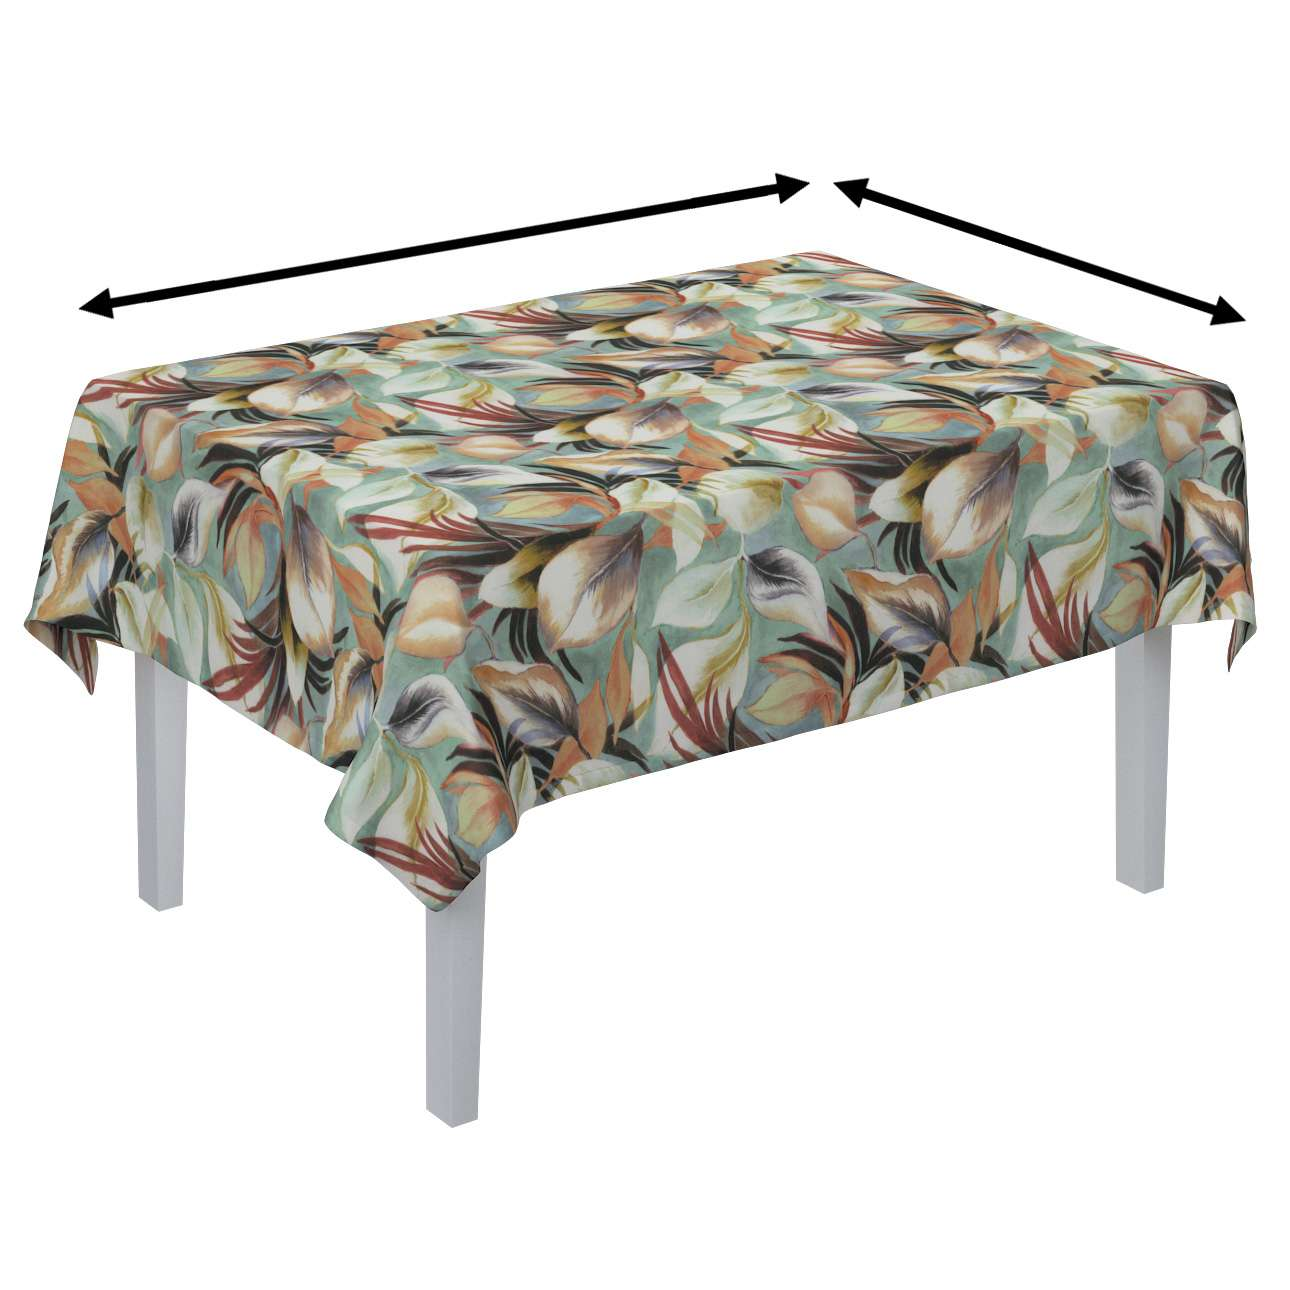 Rectangular tablecloth in collection Abigail, fabric: 143-61